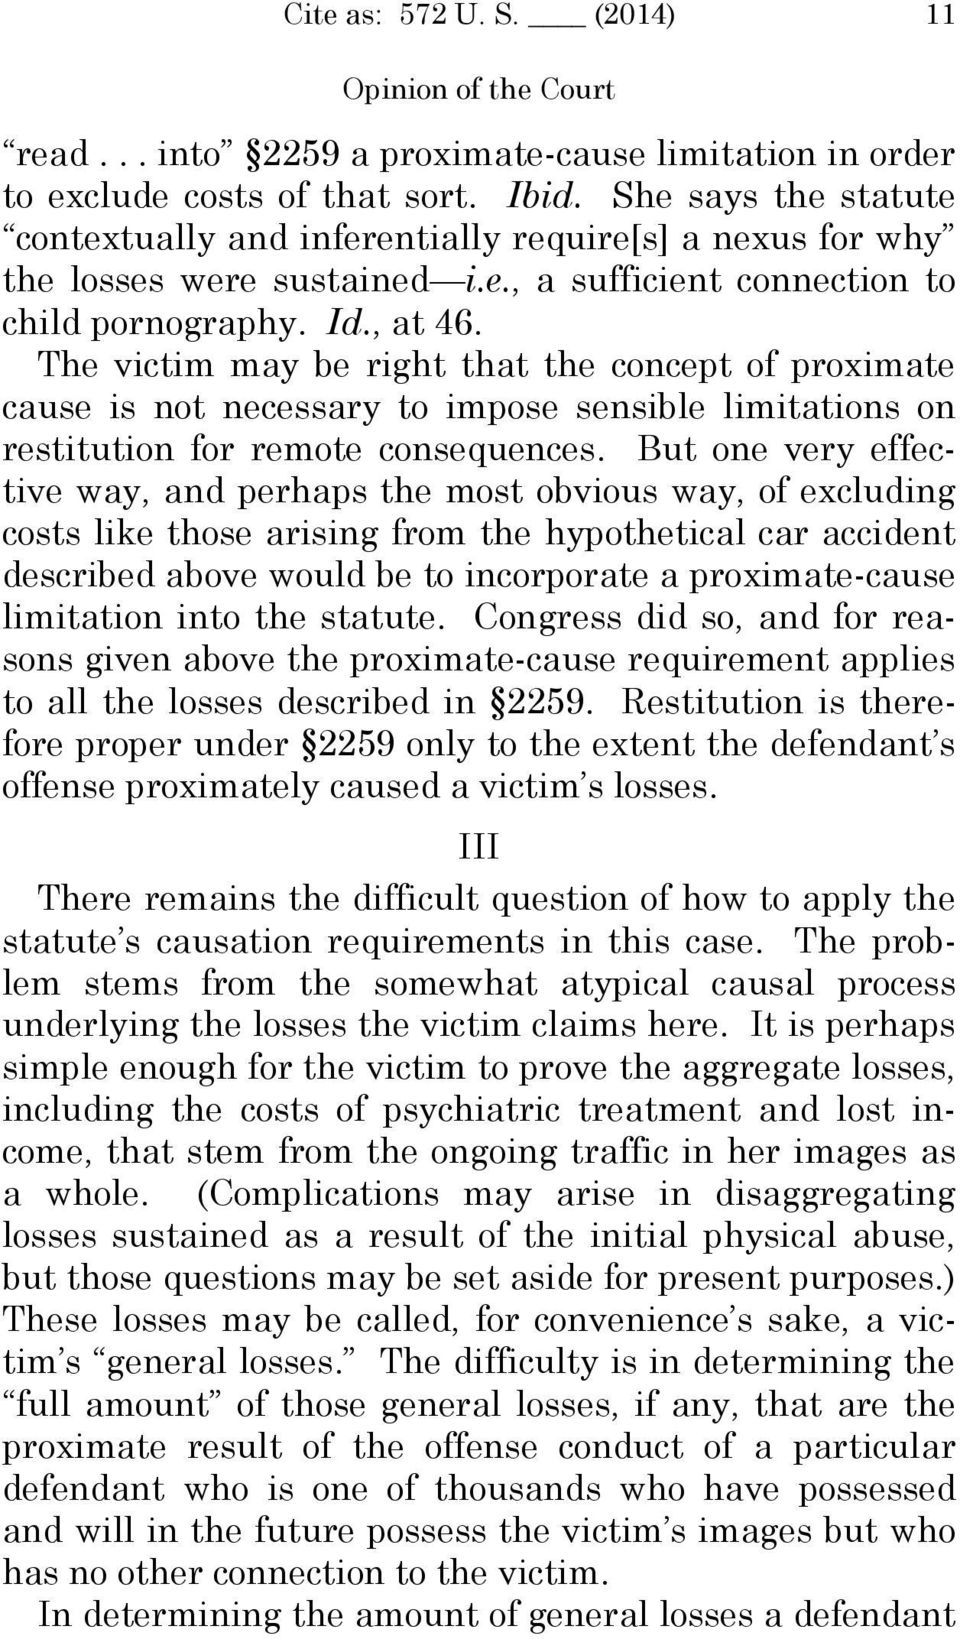 The victim may be right that the concept of proximate cause is not necessary to impose sensible limitations on restitution for remote consequences.